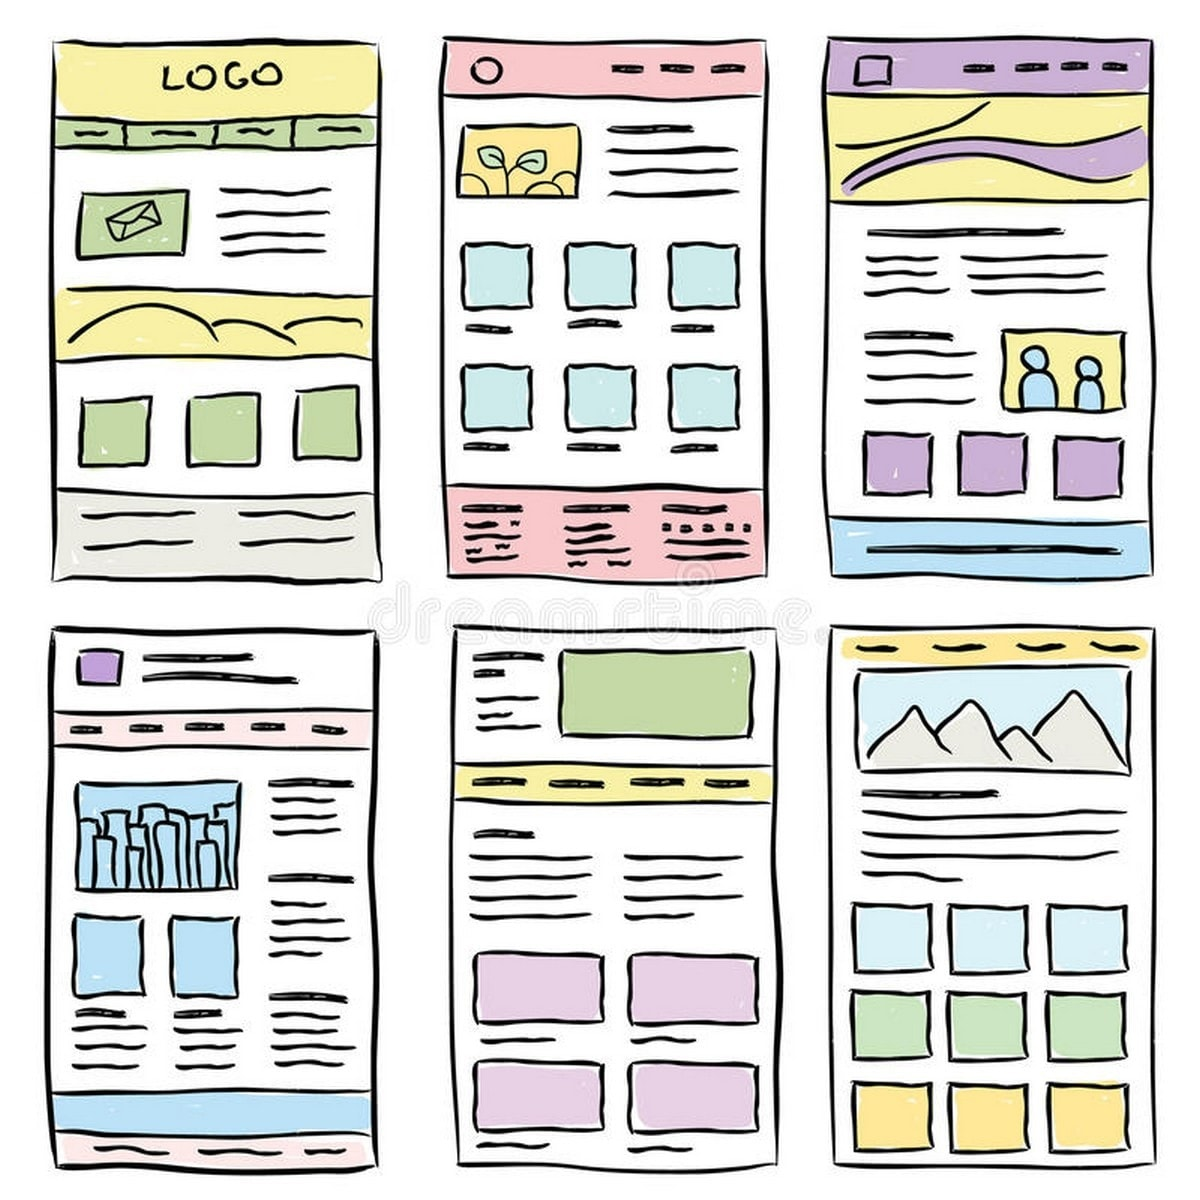 What is a Website layout? Importance of a good website layout